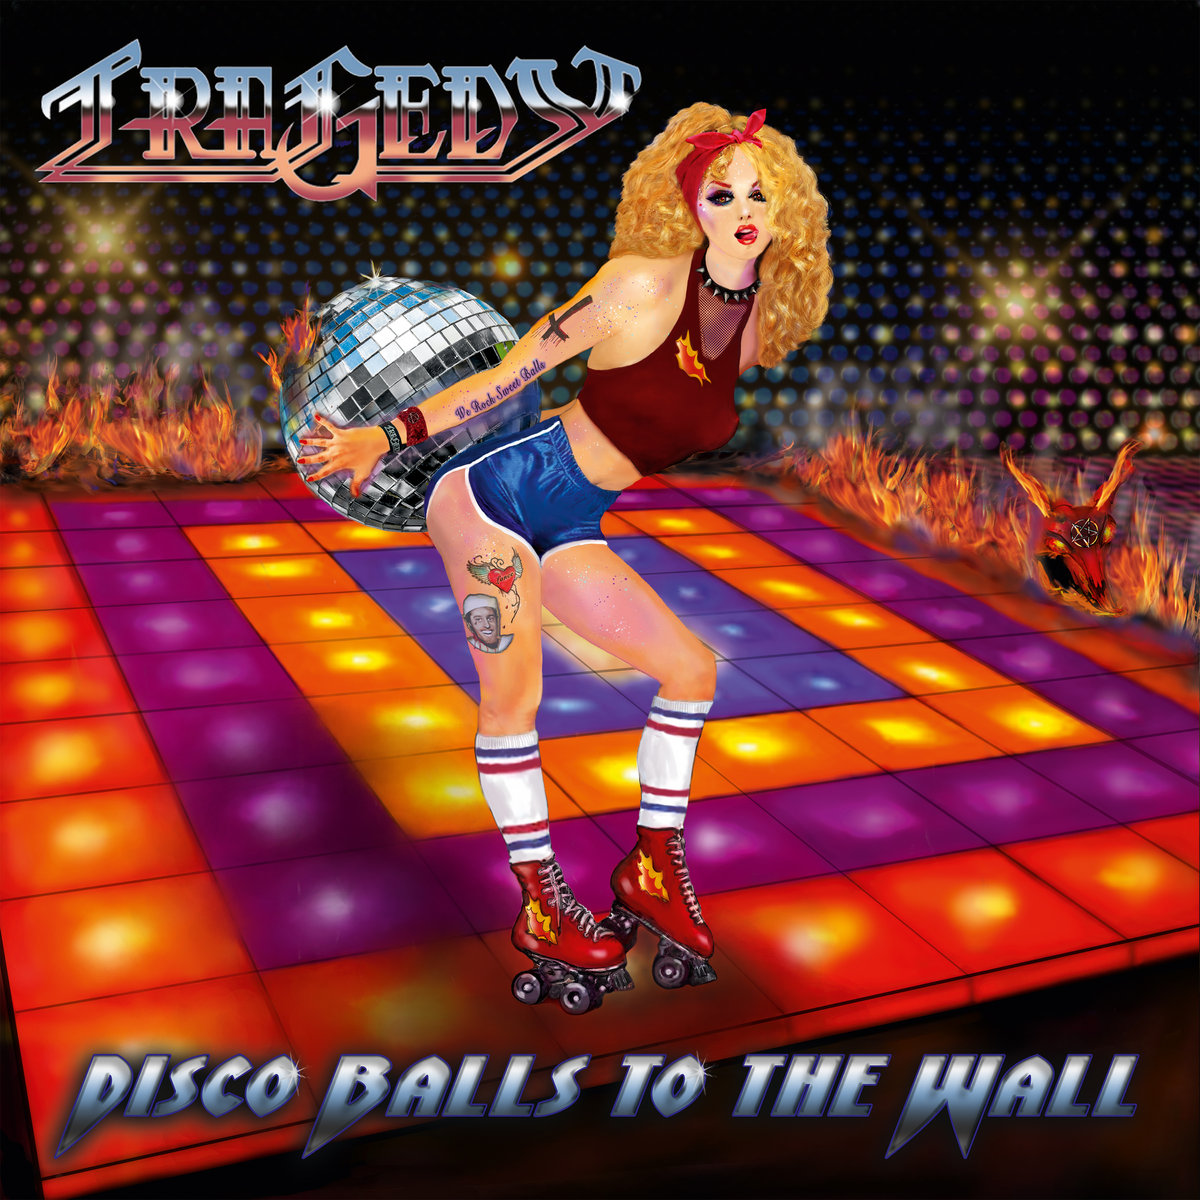 tragedy disco balls to the wall